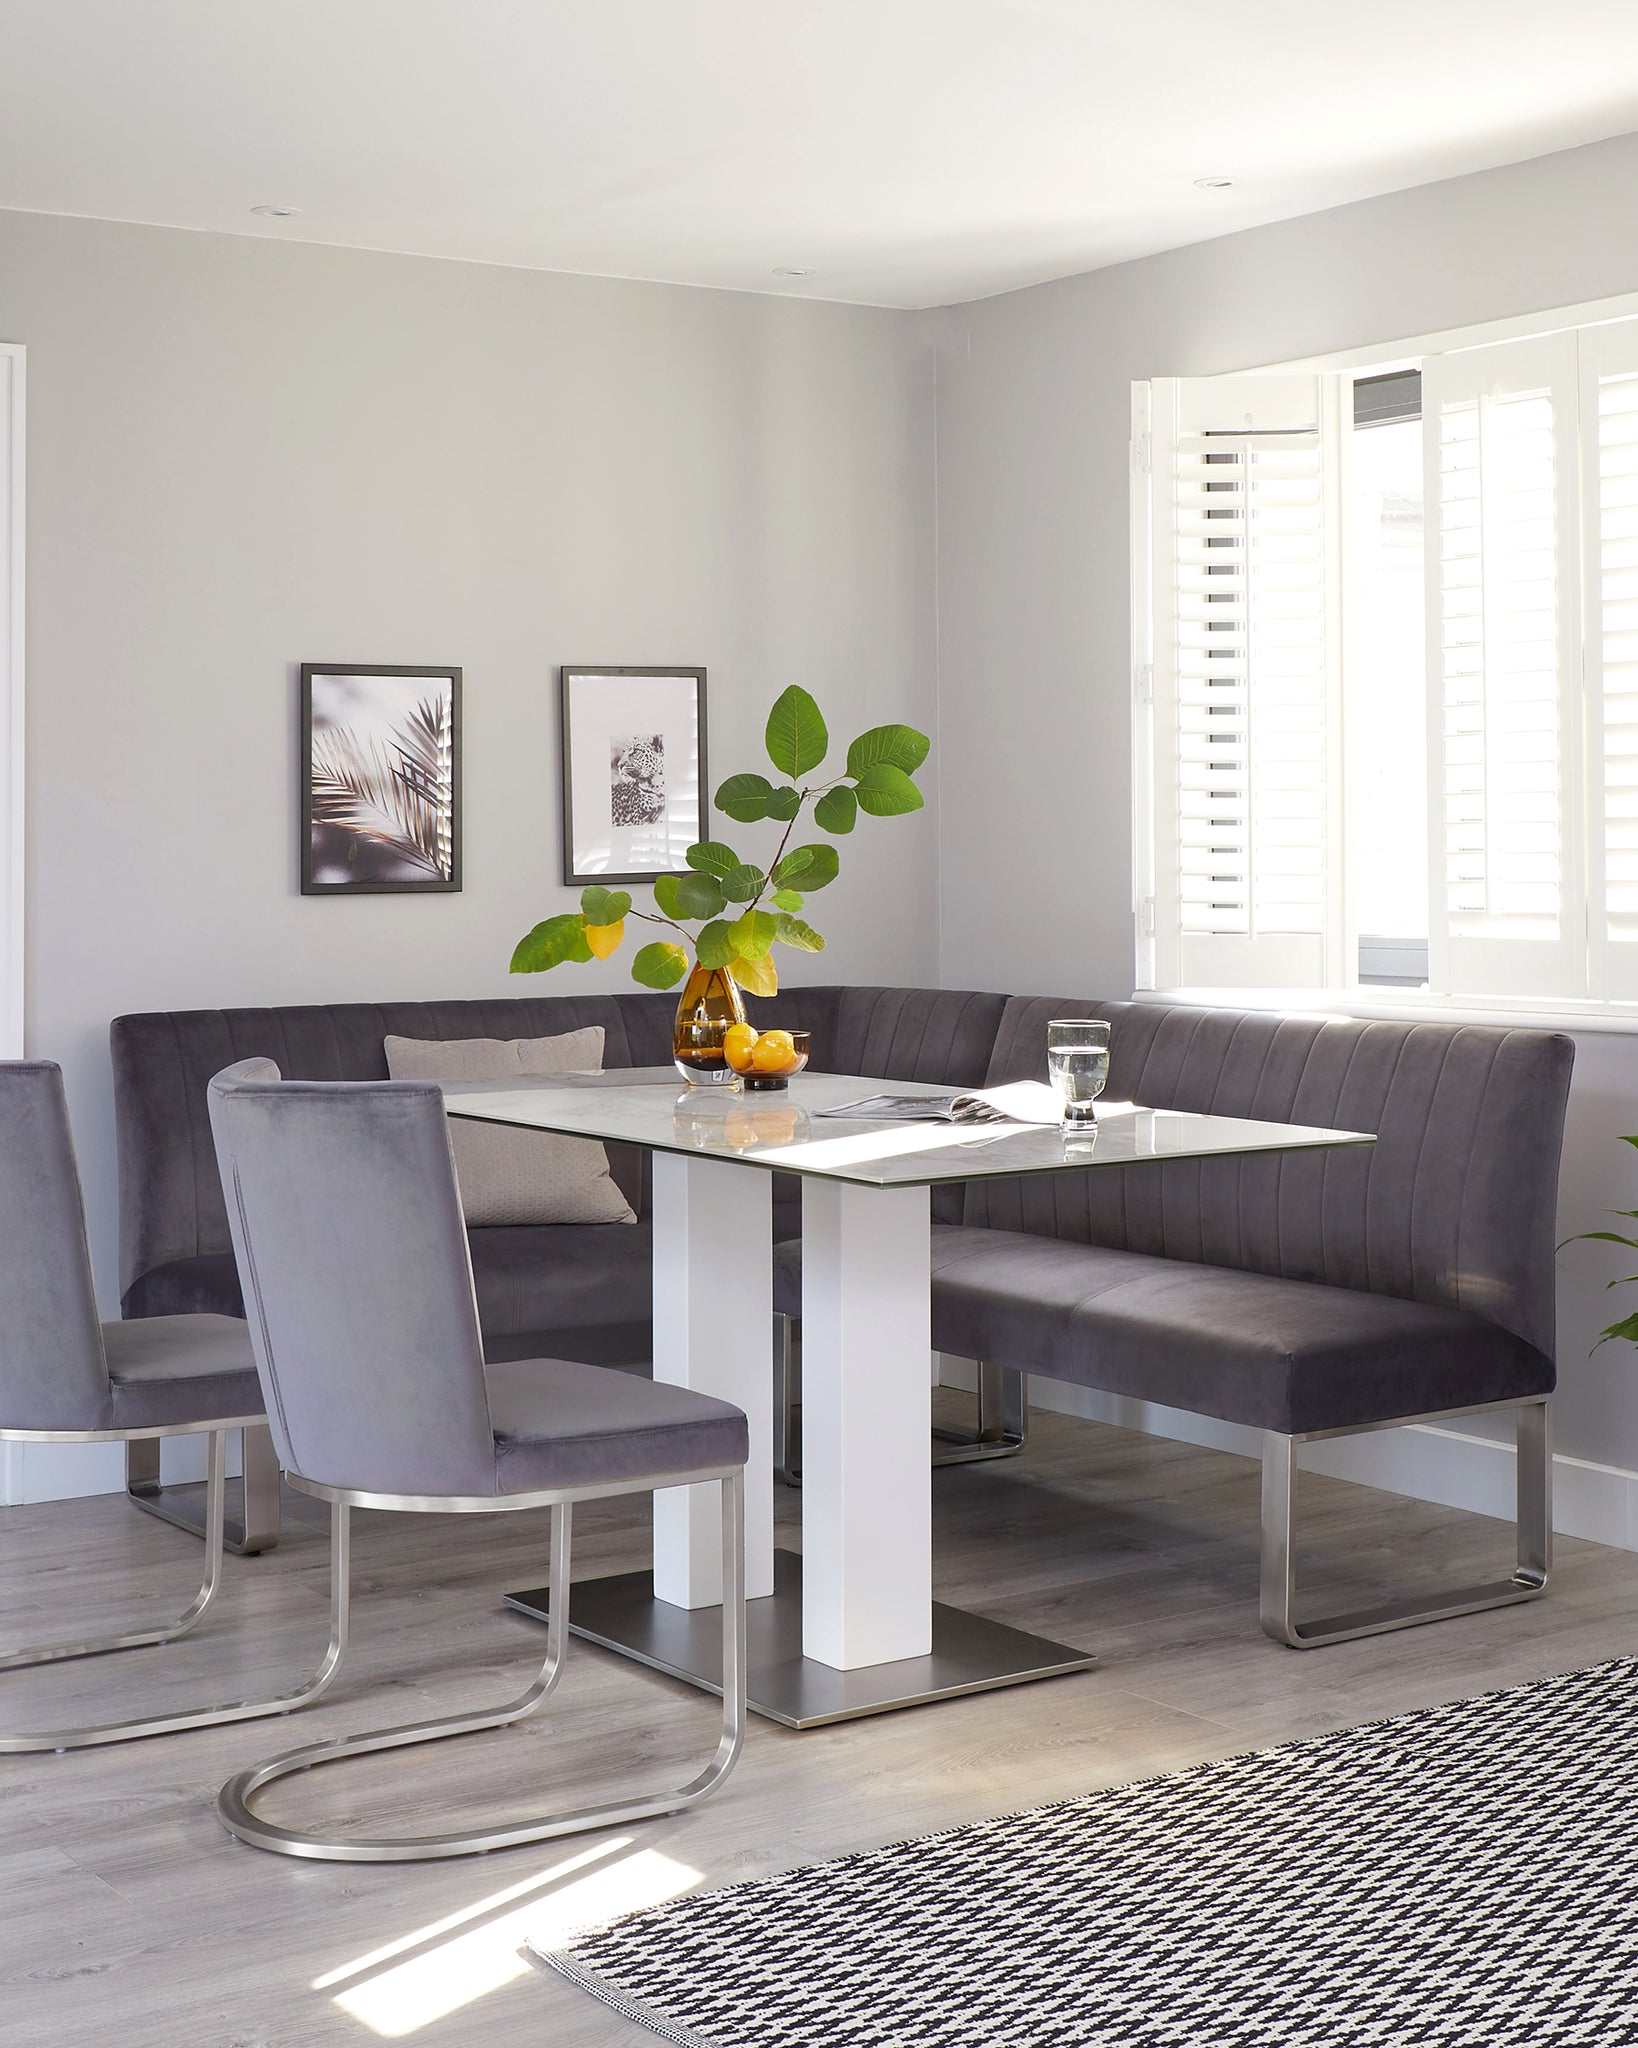 Marble Ceramic 6 Seater White Dining Table From Danetti